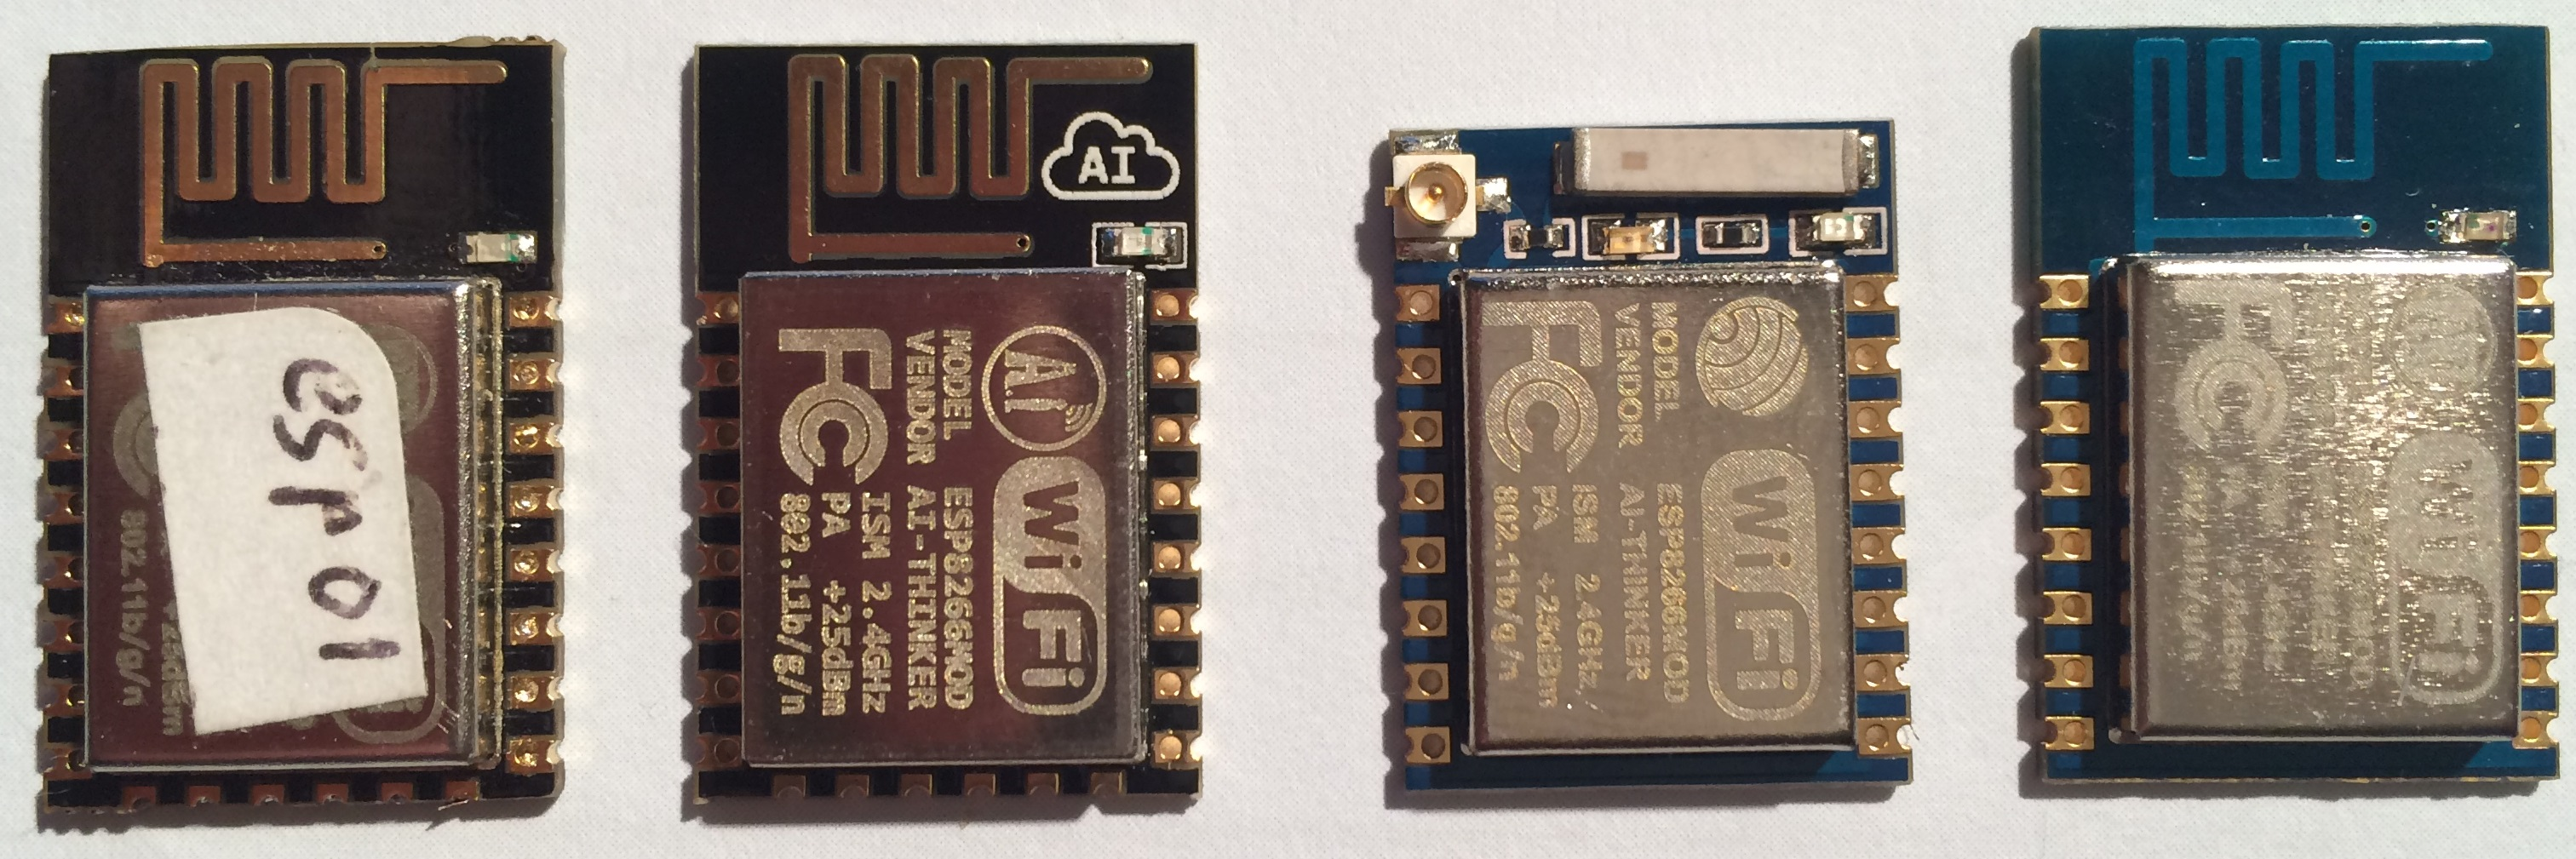 ESP8266 Reset and CH_PD pins for FTDI auto reset – Charles's